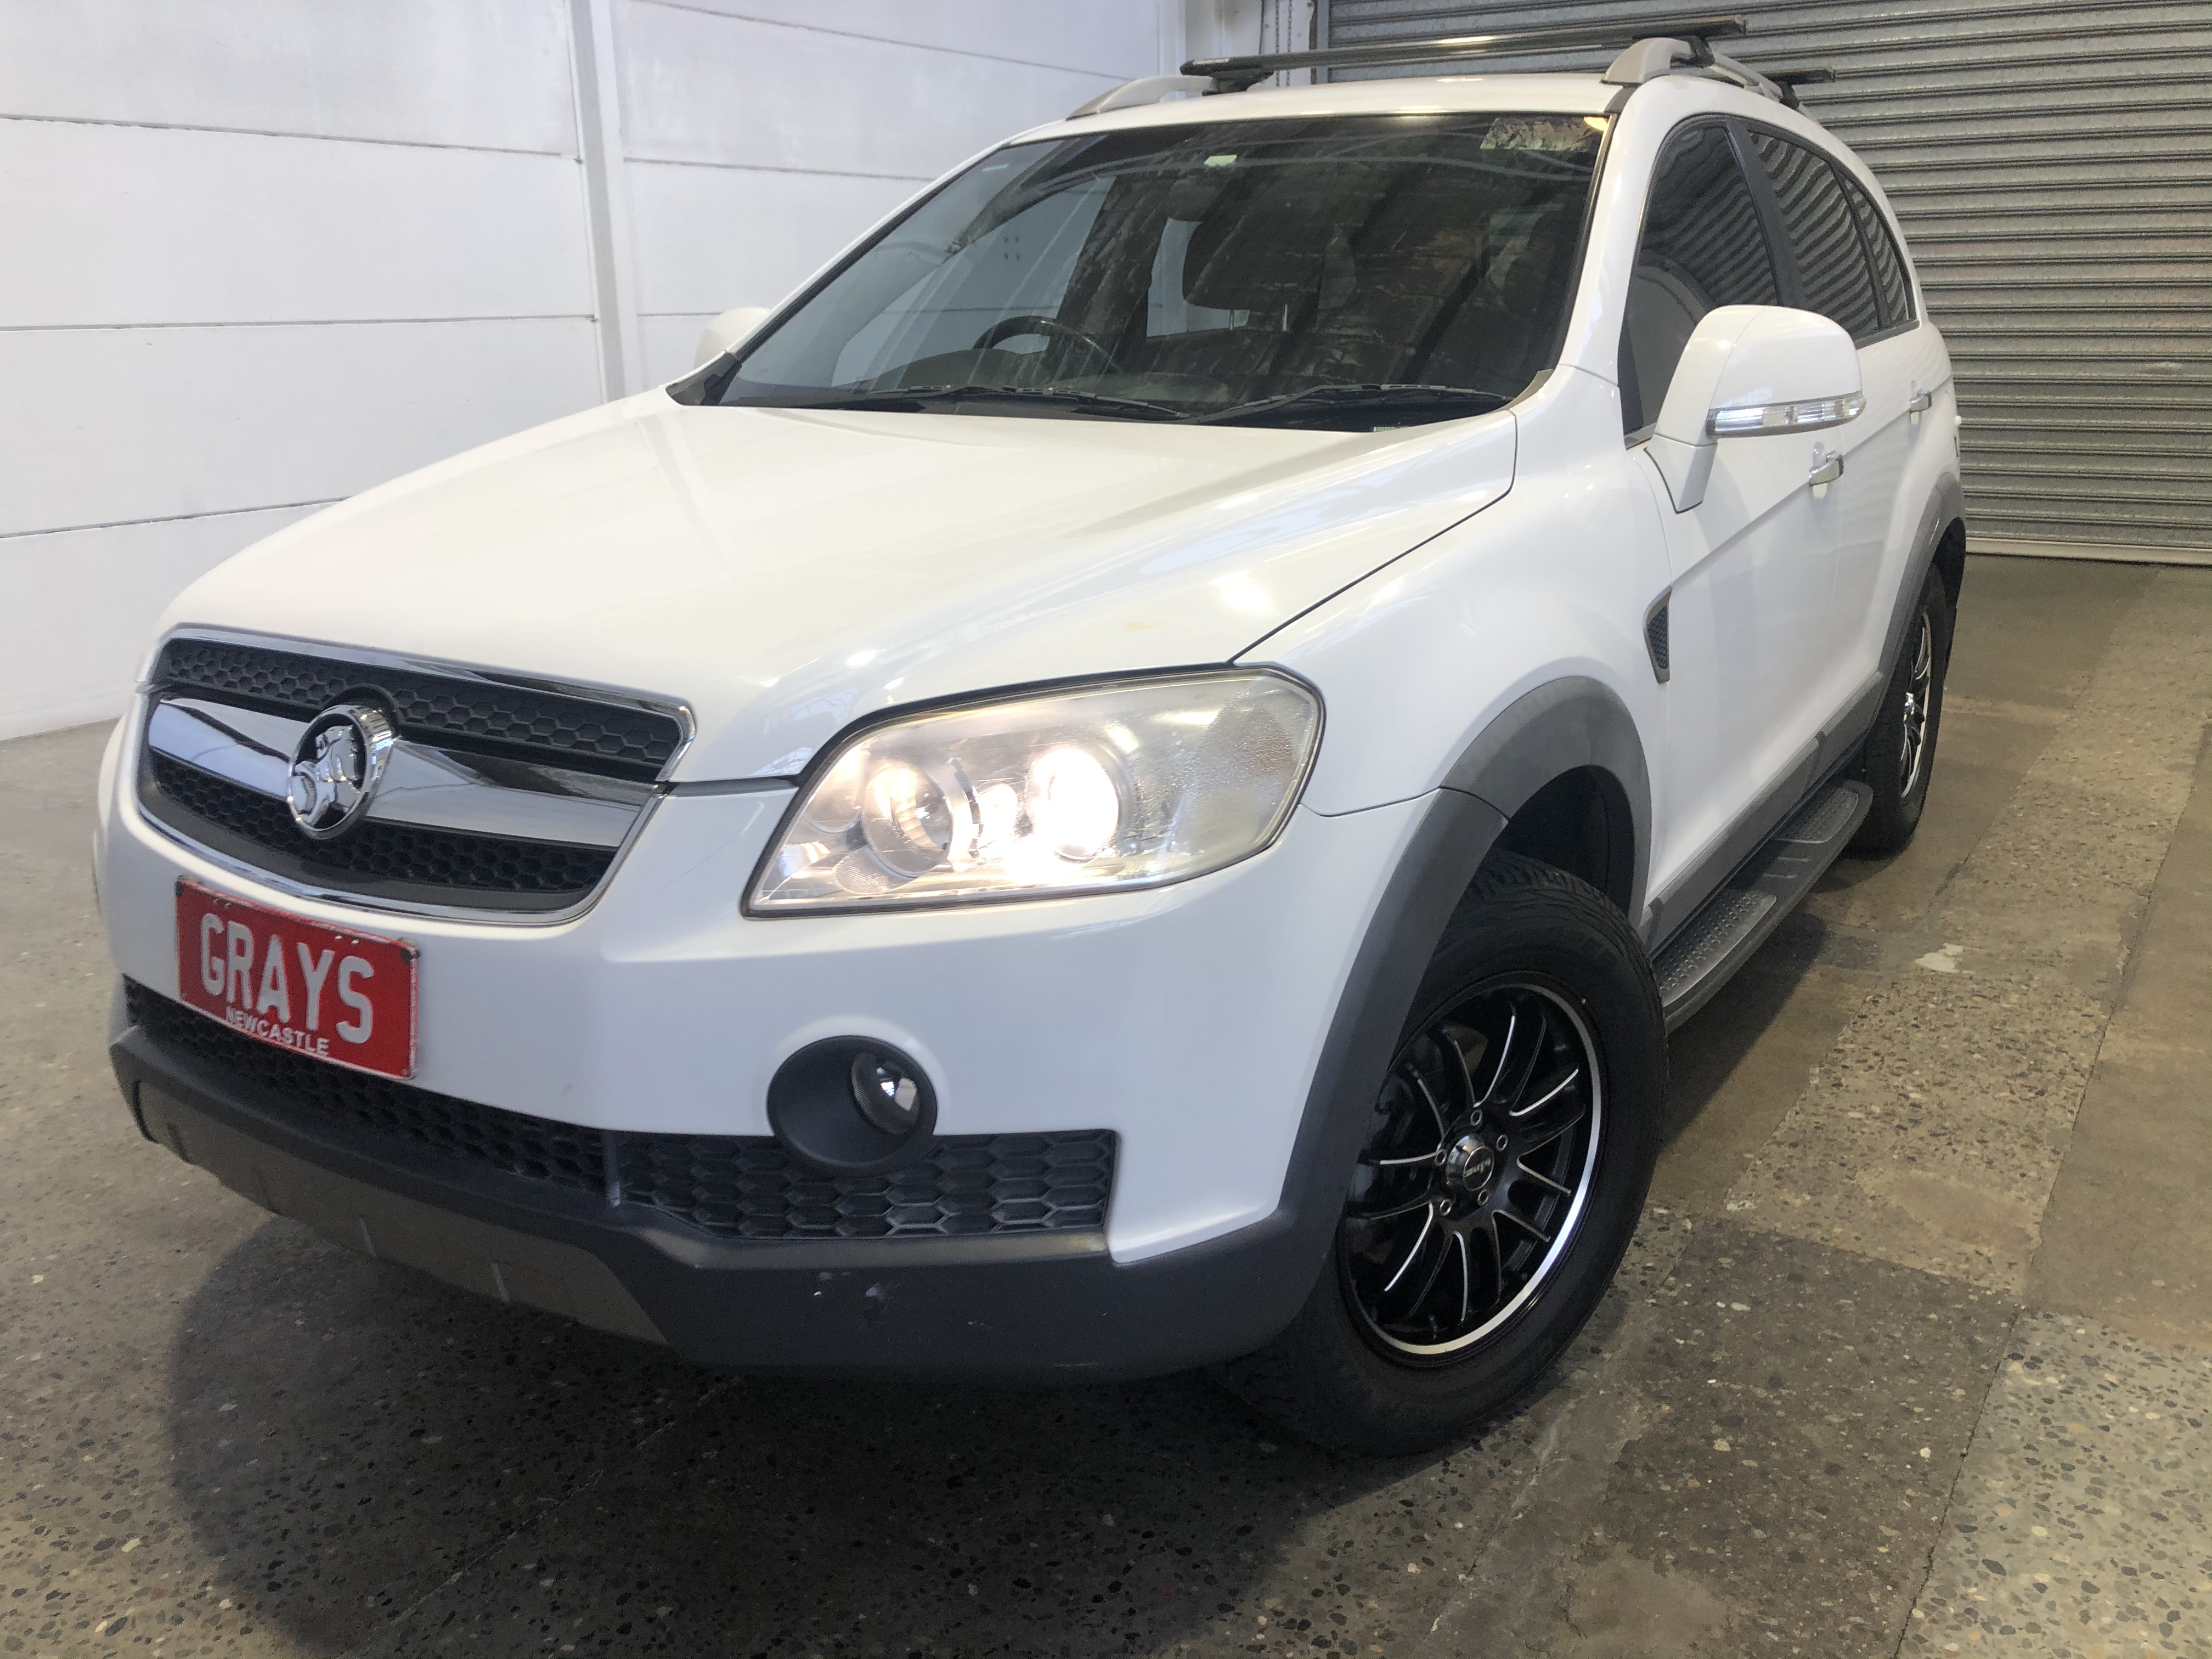 2009 Holden Captiva LX (4x4) CG Automatic 7 Seats Wagon